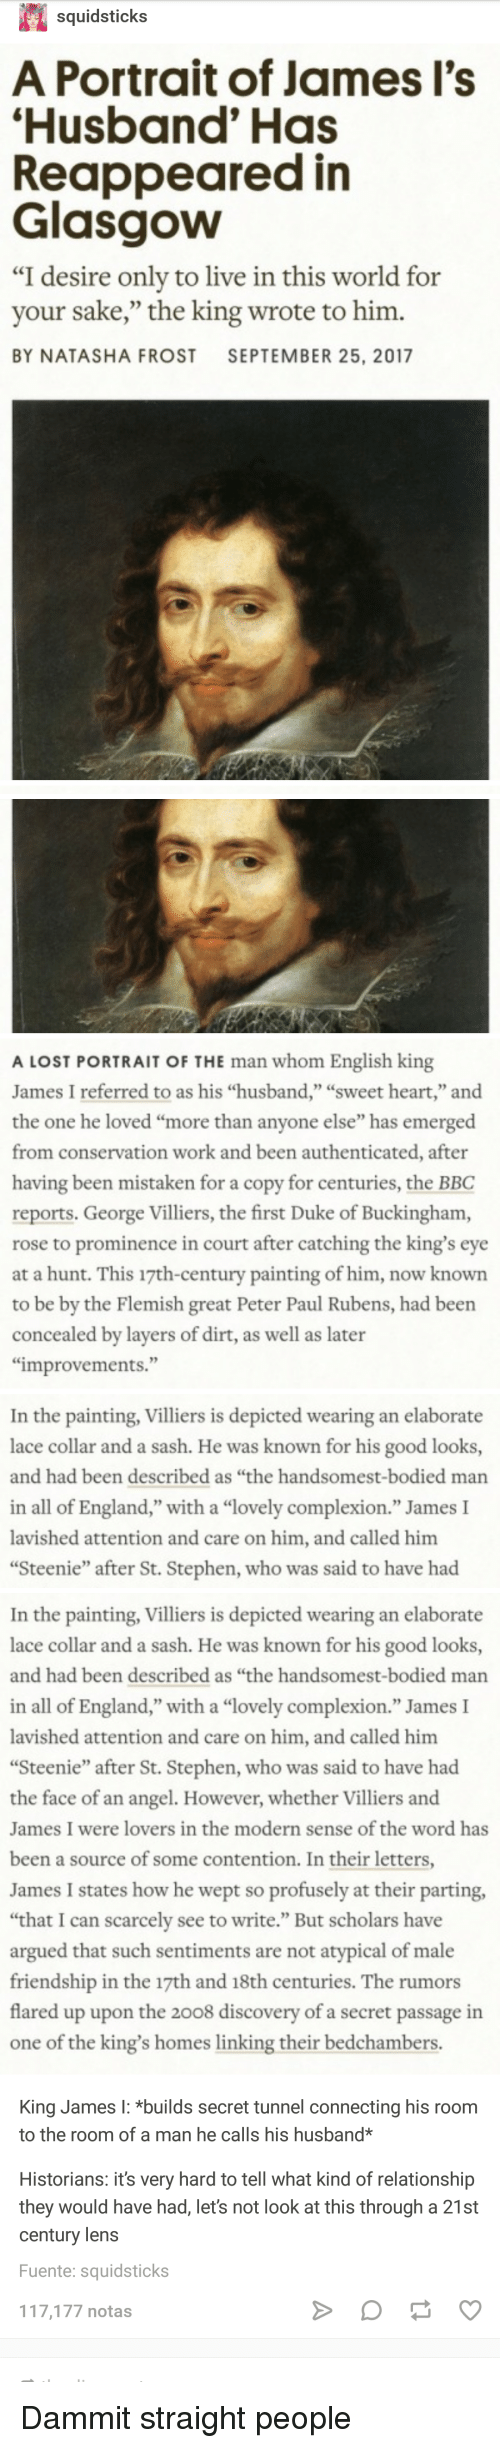 """Parting: squidsticks  A Portrait of James l's  Husband' Has  Reappeared in  Glasgow  """"I desire only to live in this world for  your sake,"""" the king wrote to him.  BY NATASHA FROST SEPTEMBER 25, 2017  0)   A LOST PORTRAIT OF THE man whom English king  James I referred to as his """"husband,"""" """"sweet heart,"""" and  the one he loved """"more than anyone else"""" has emerged  from conservation work and been authenticated, after  having been mistaken for a copy for centuries, the BBC  reports, George Villiers, the first Duke of Buckingham,  rose to prominence in court after catching the king's eye  at a hunt. This 17th-century painting of him, now known  to be by the Flemish great Peter Paul Rubens, had been  concealed by layers of dirt, as well as later  improvements.""""  In the painting, Villiers is depicted wearing an elaborate  lace collar and a sash. He was known for his good looks,  and had been described as """"the handsomest-bodied marn  in all of England,"""" with a """"lovely complexion."""" James I  lavished attention and care on him, and called him  Steenie"""" after St. Stephen, who was said to have had   In the painting, Villiers is depicted wearing an elaborate  lace collar and a sash. He was known for his good looks,  and had been described as """"the handsomest-bodied man  in all of England,"""" with a """"lovely complexion."""" James I  lavished attention and care on him, and called him  Steenie"""" after St. Stephen, who was said to have had  the face of an angel. However, whether Villiers and  James I were lovers in the modern sense of the word has  been a source of some contention. In their letters  James I states how he wept so profusely at their parting,  """"that I can scarcely see to write."""" But scholars have  argued that such sentiments are not atypical of male  friendship in the 17th and 18th centuries. The rumors  flared up upon the 2008 discovery of a secret passage in  one of the king's homes linking their bedchambers  King James I: *builds secret tunnel connecting his room  to the room """